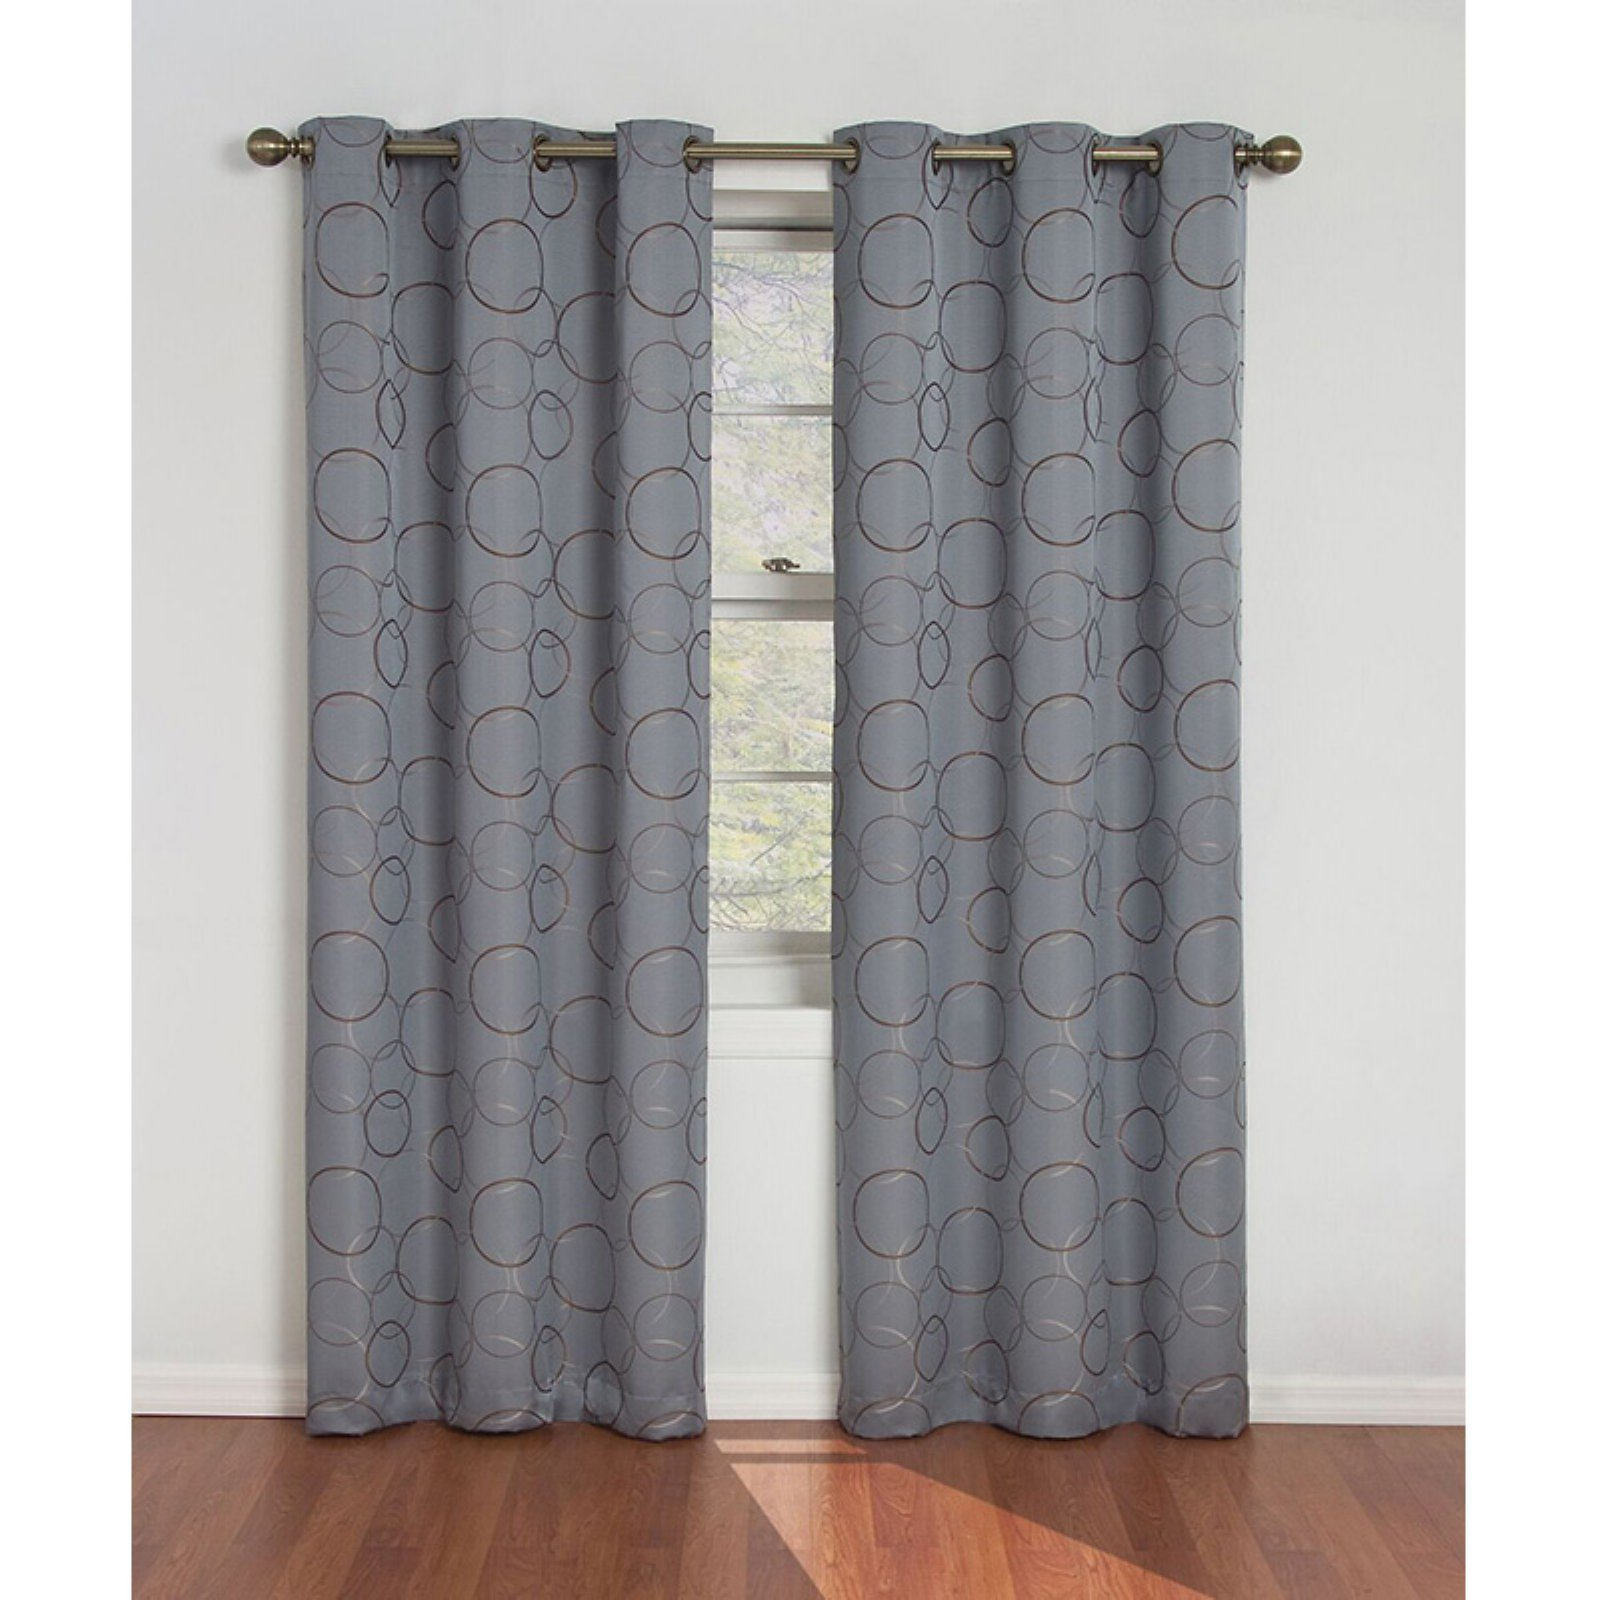 Eclipse Meridian Blackout Window Curtain Panel by Ellery Holdings LLC